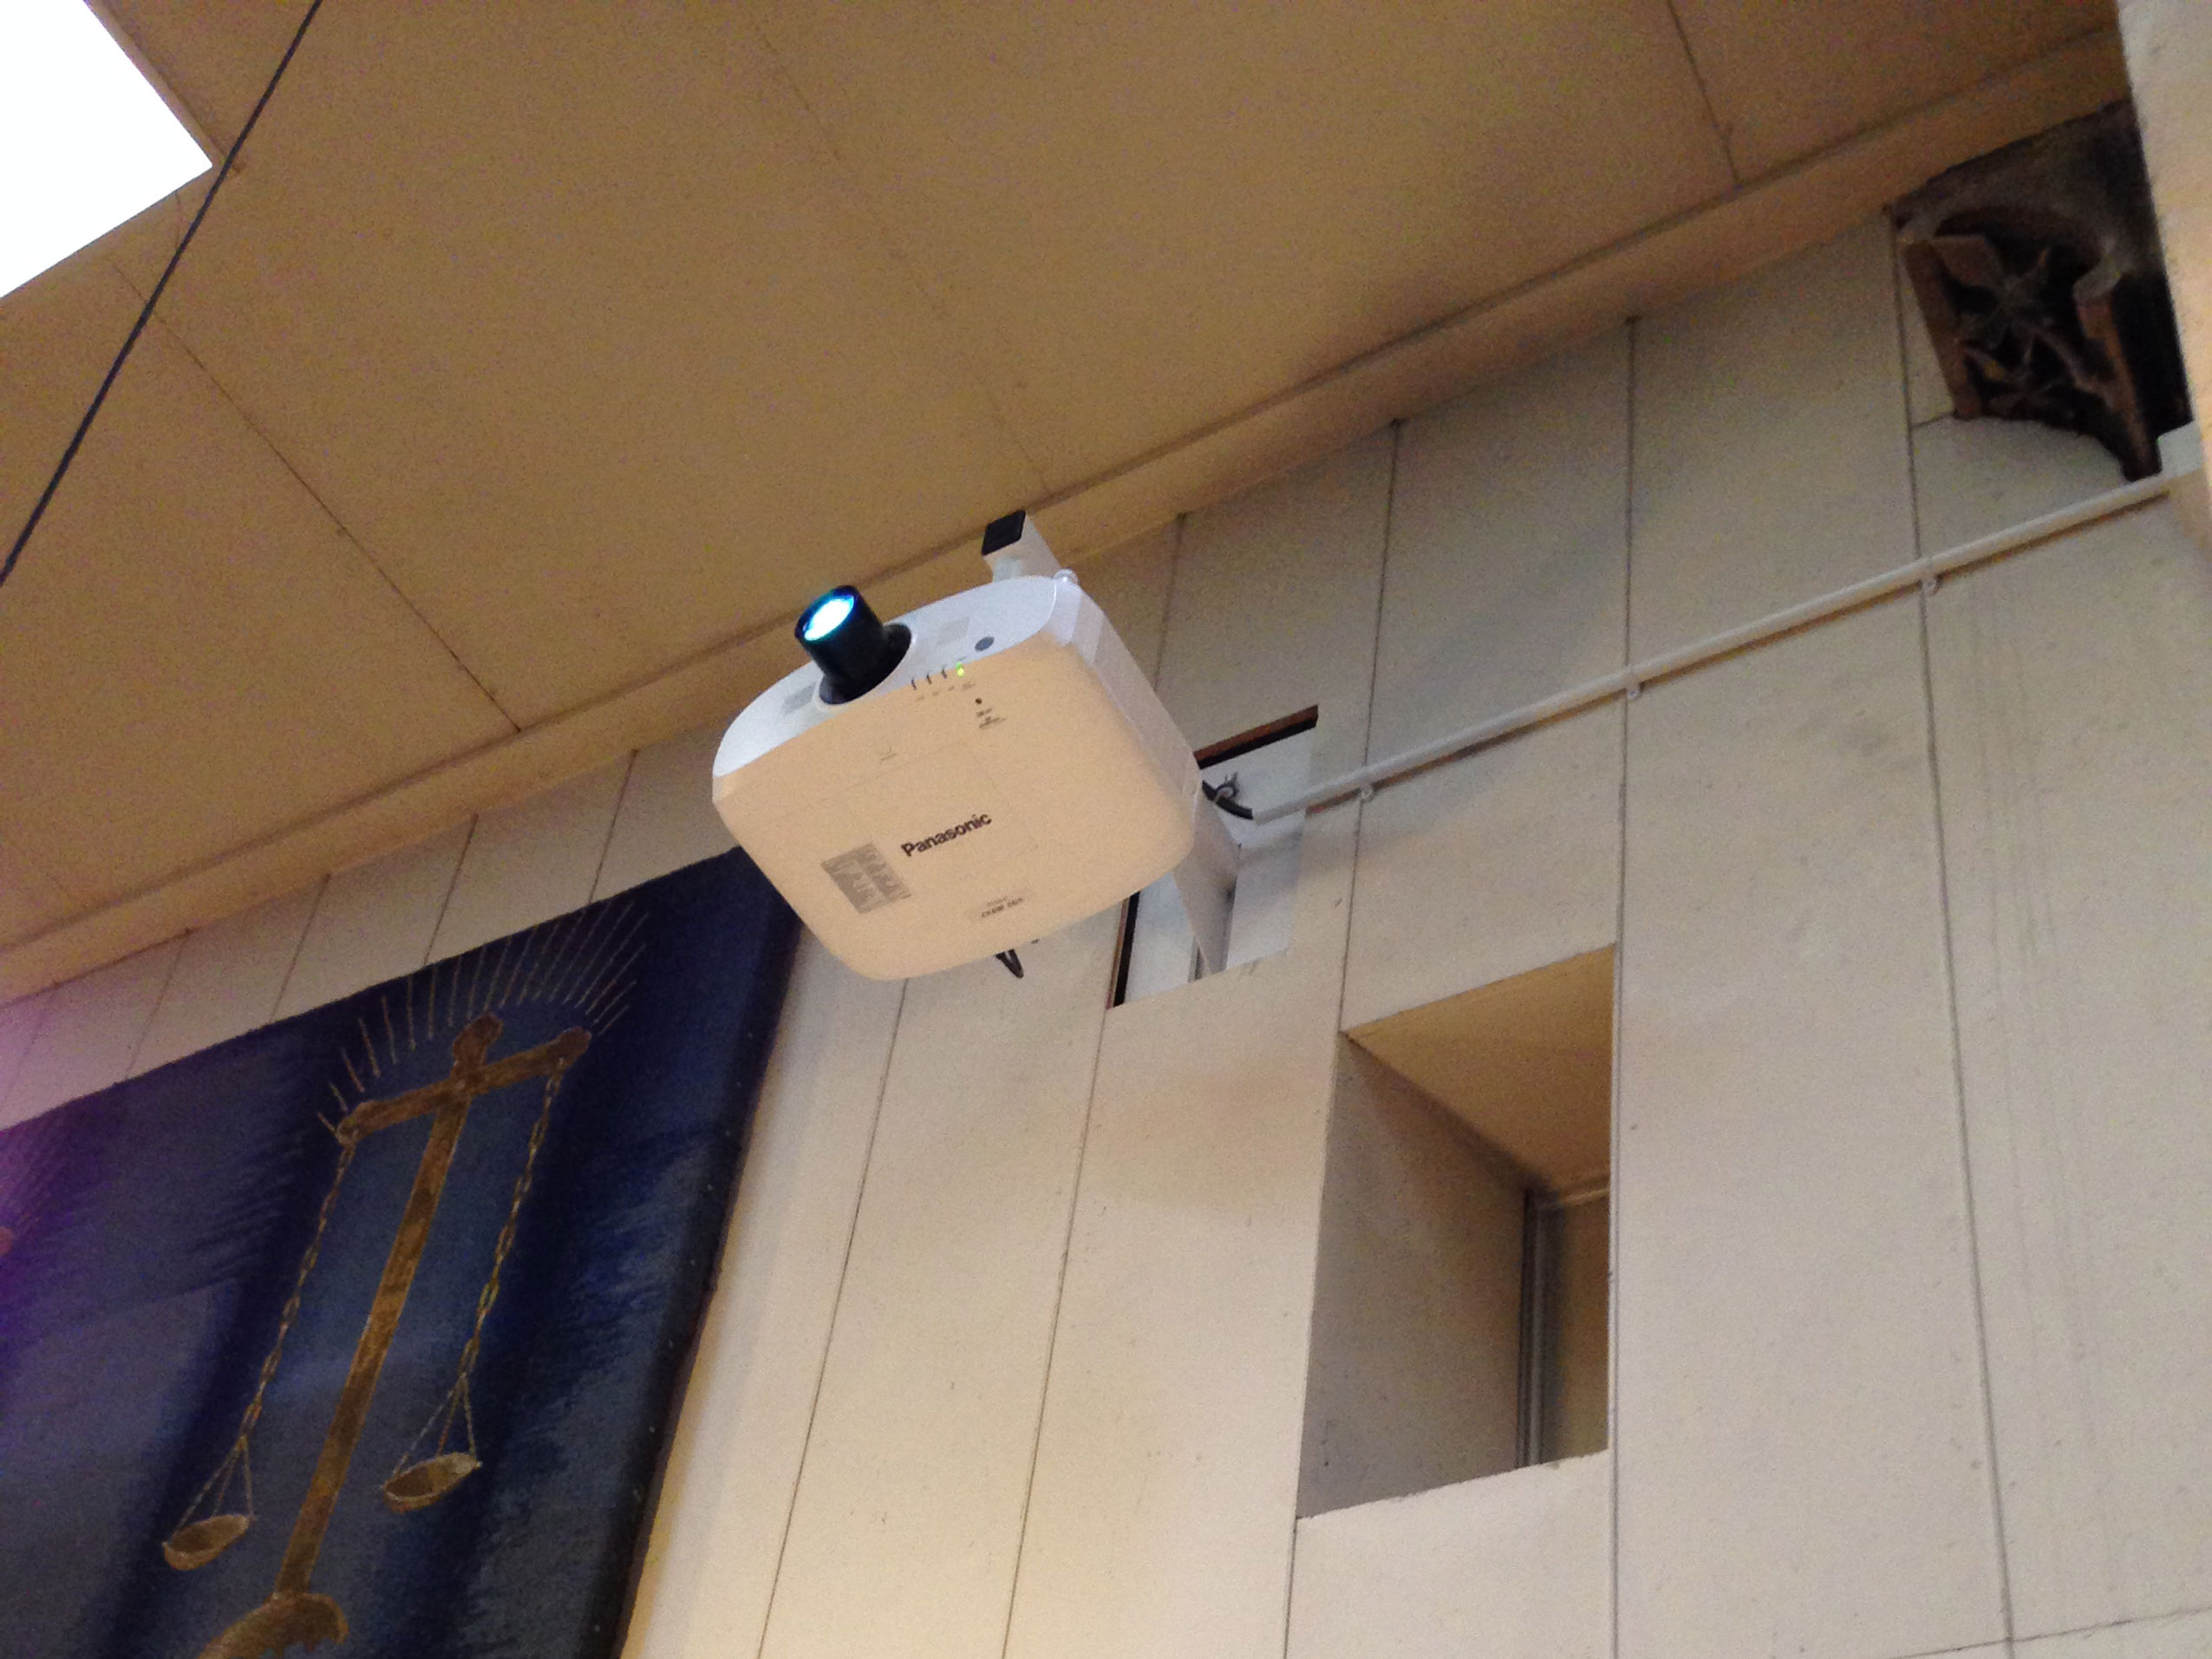 Projection – Discreetly mounted projectors